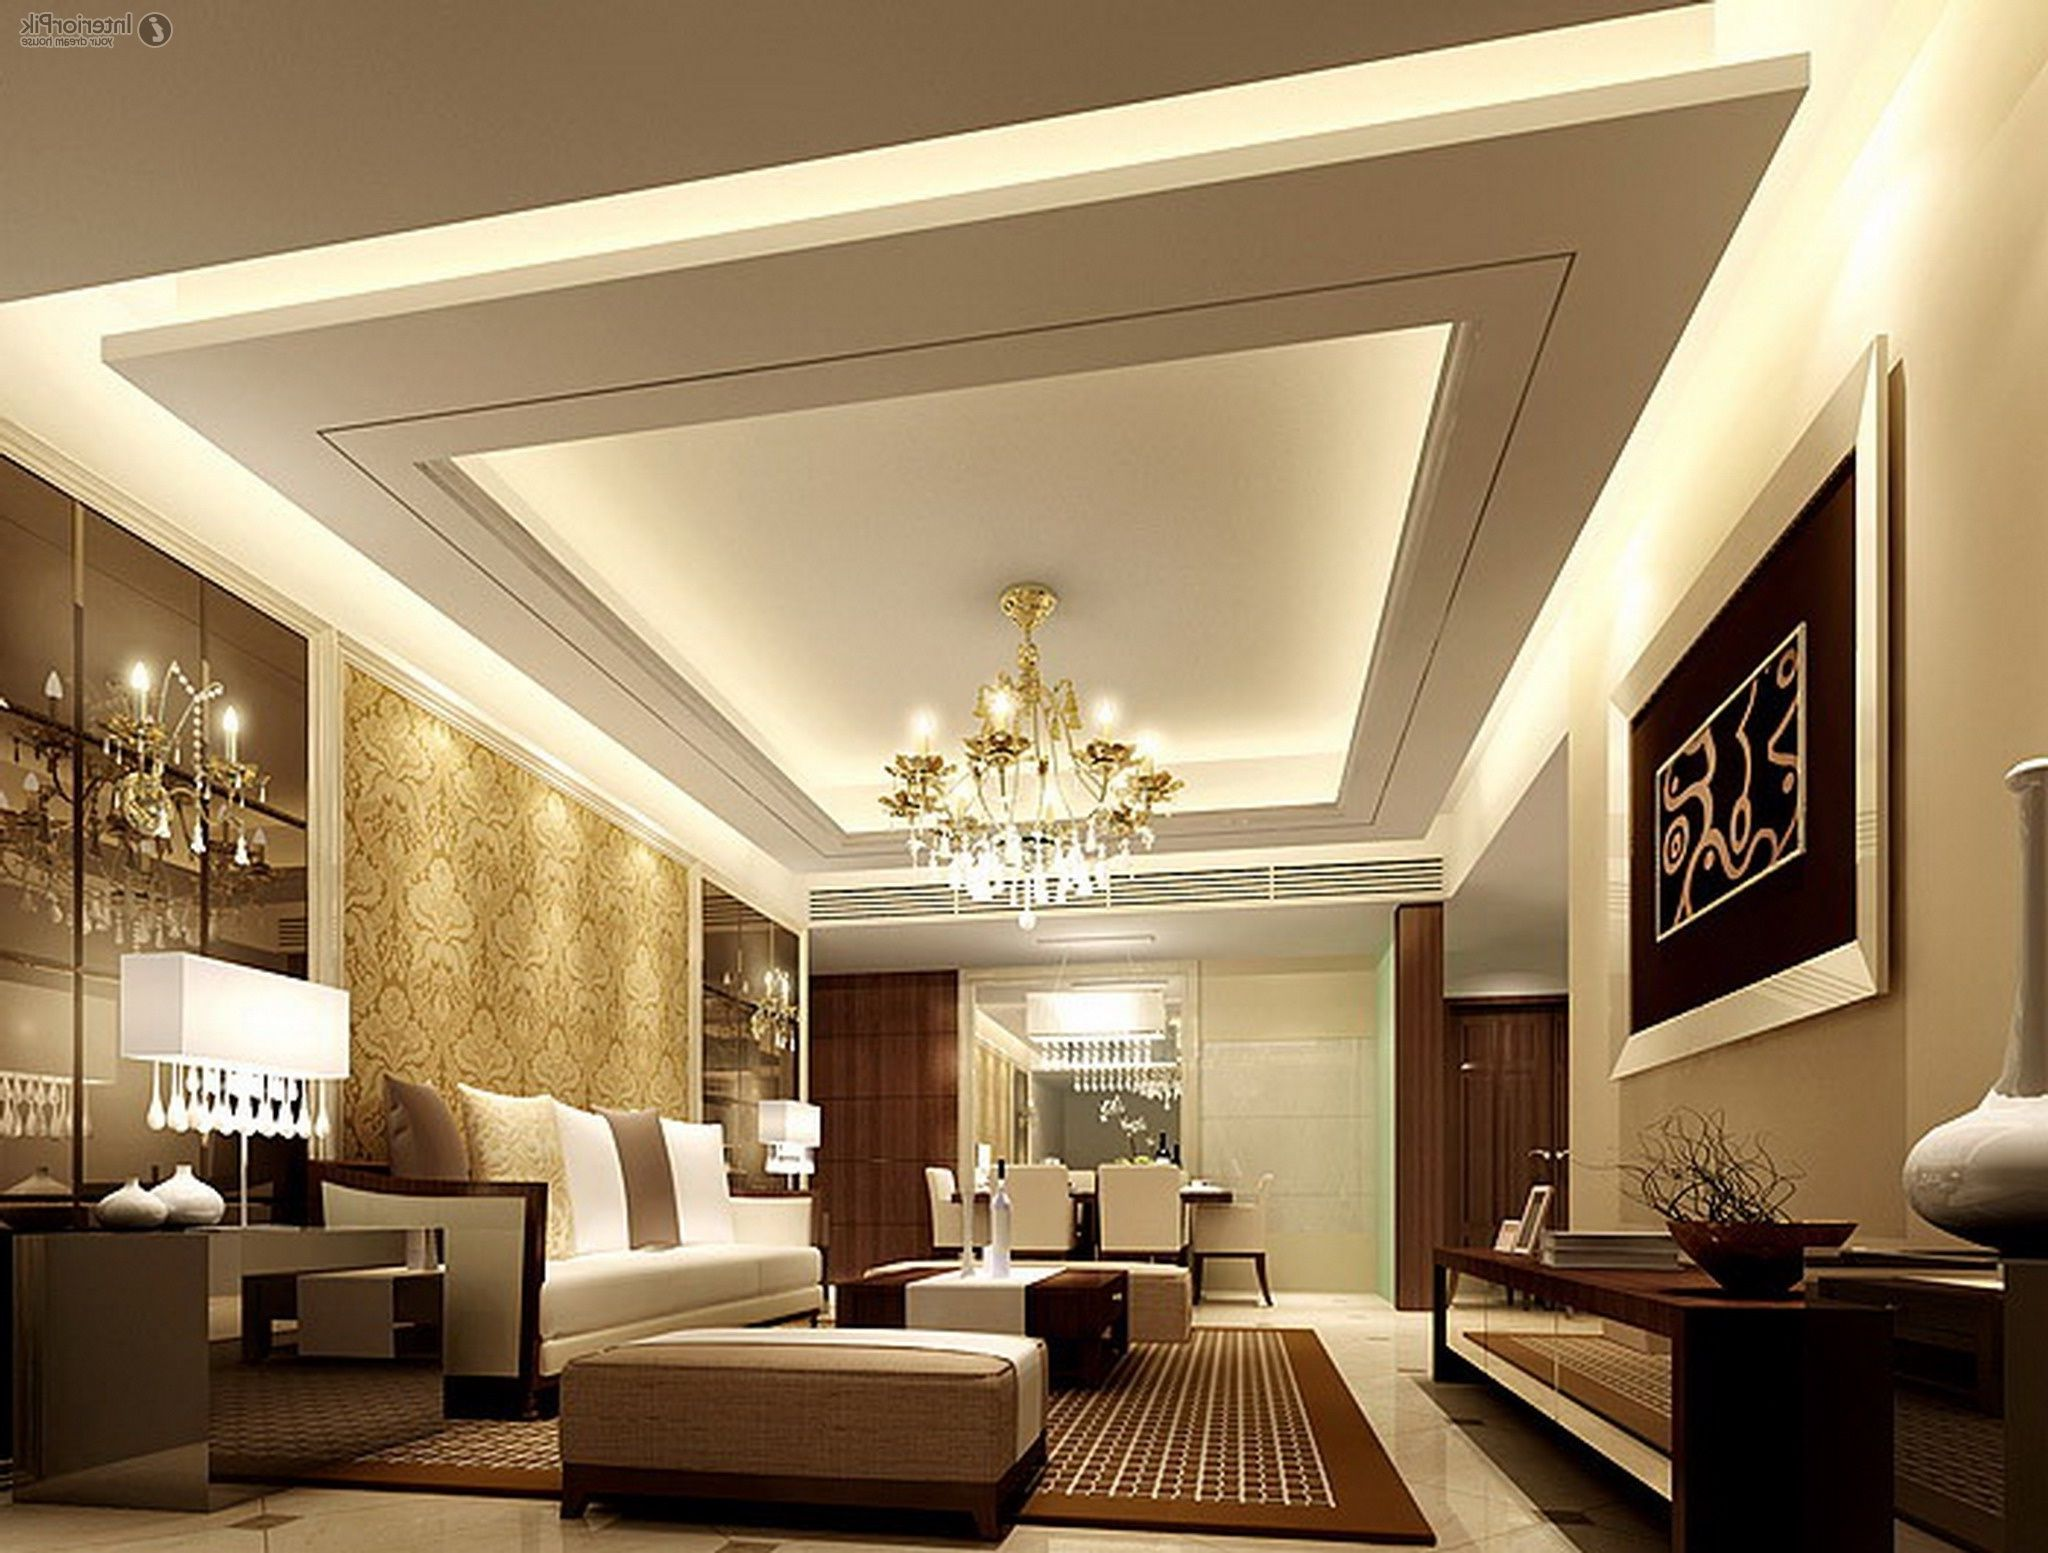 Modern Bedroom Ceiling Design dining room , dining room ceiling designs : dining room ceiling